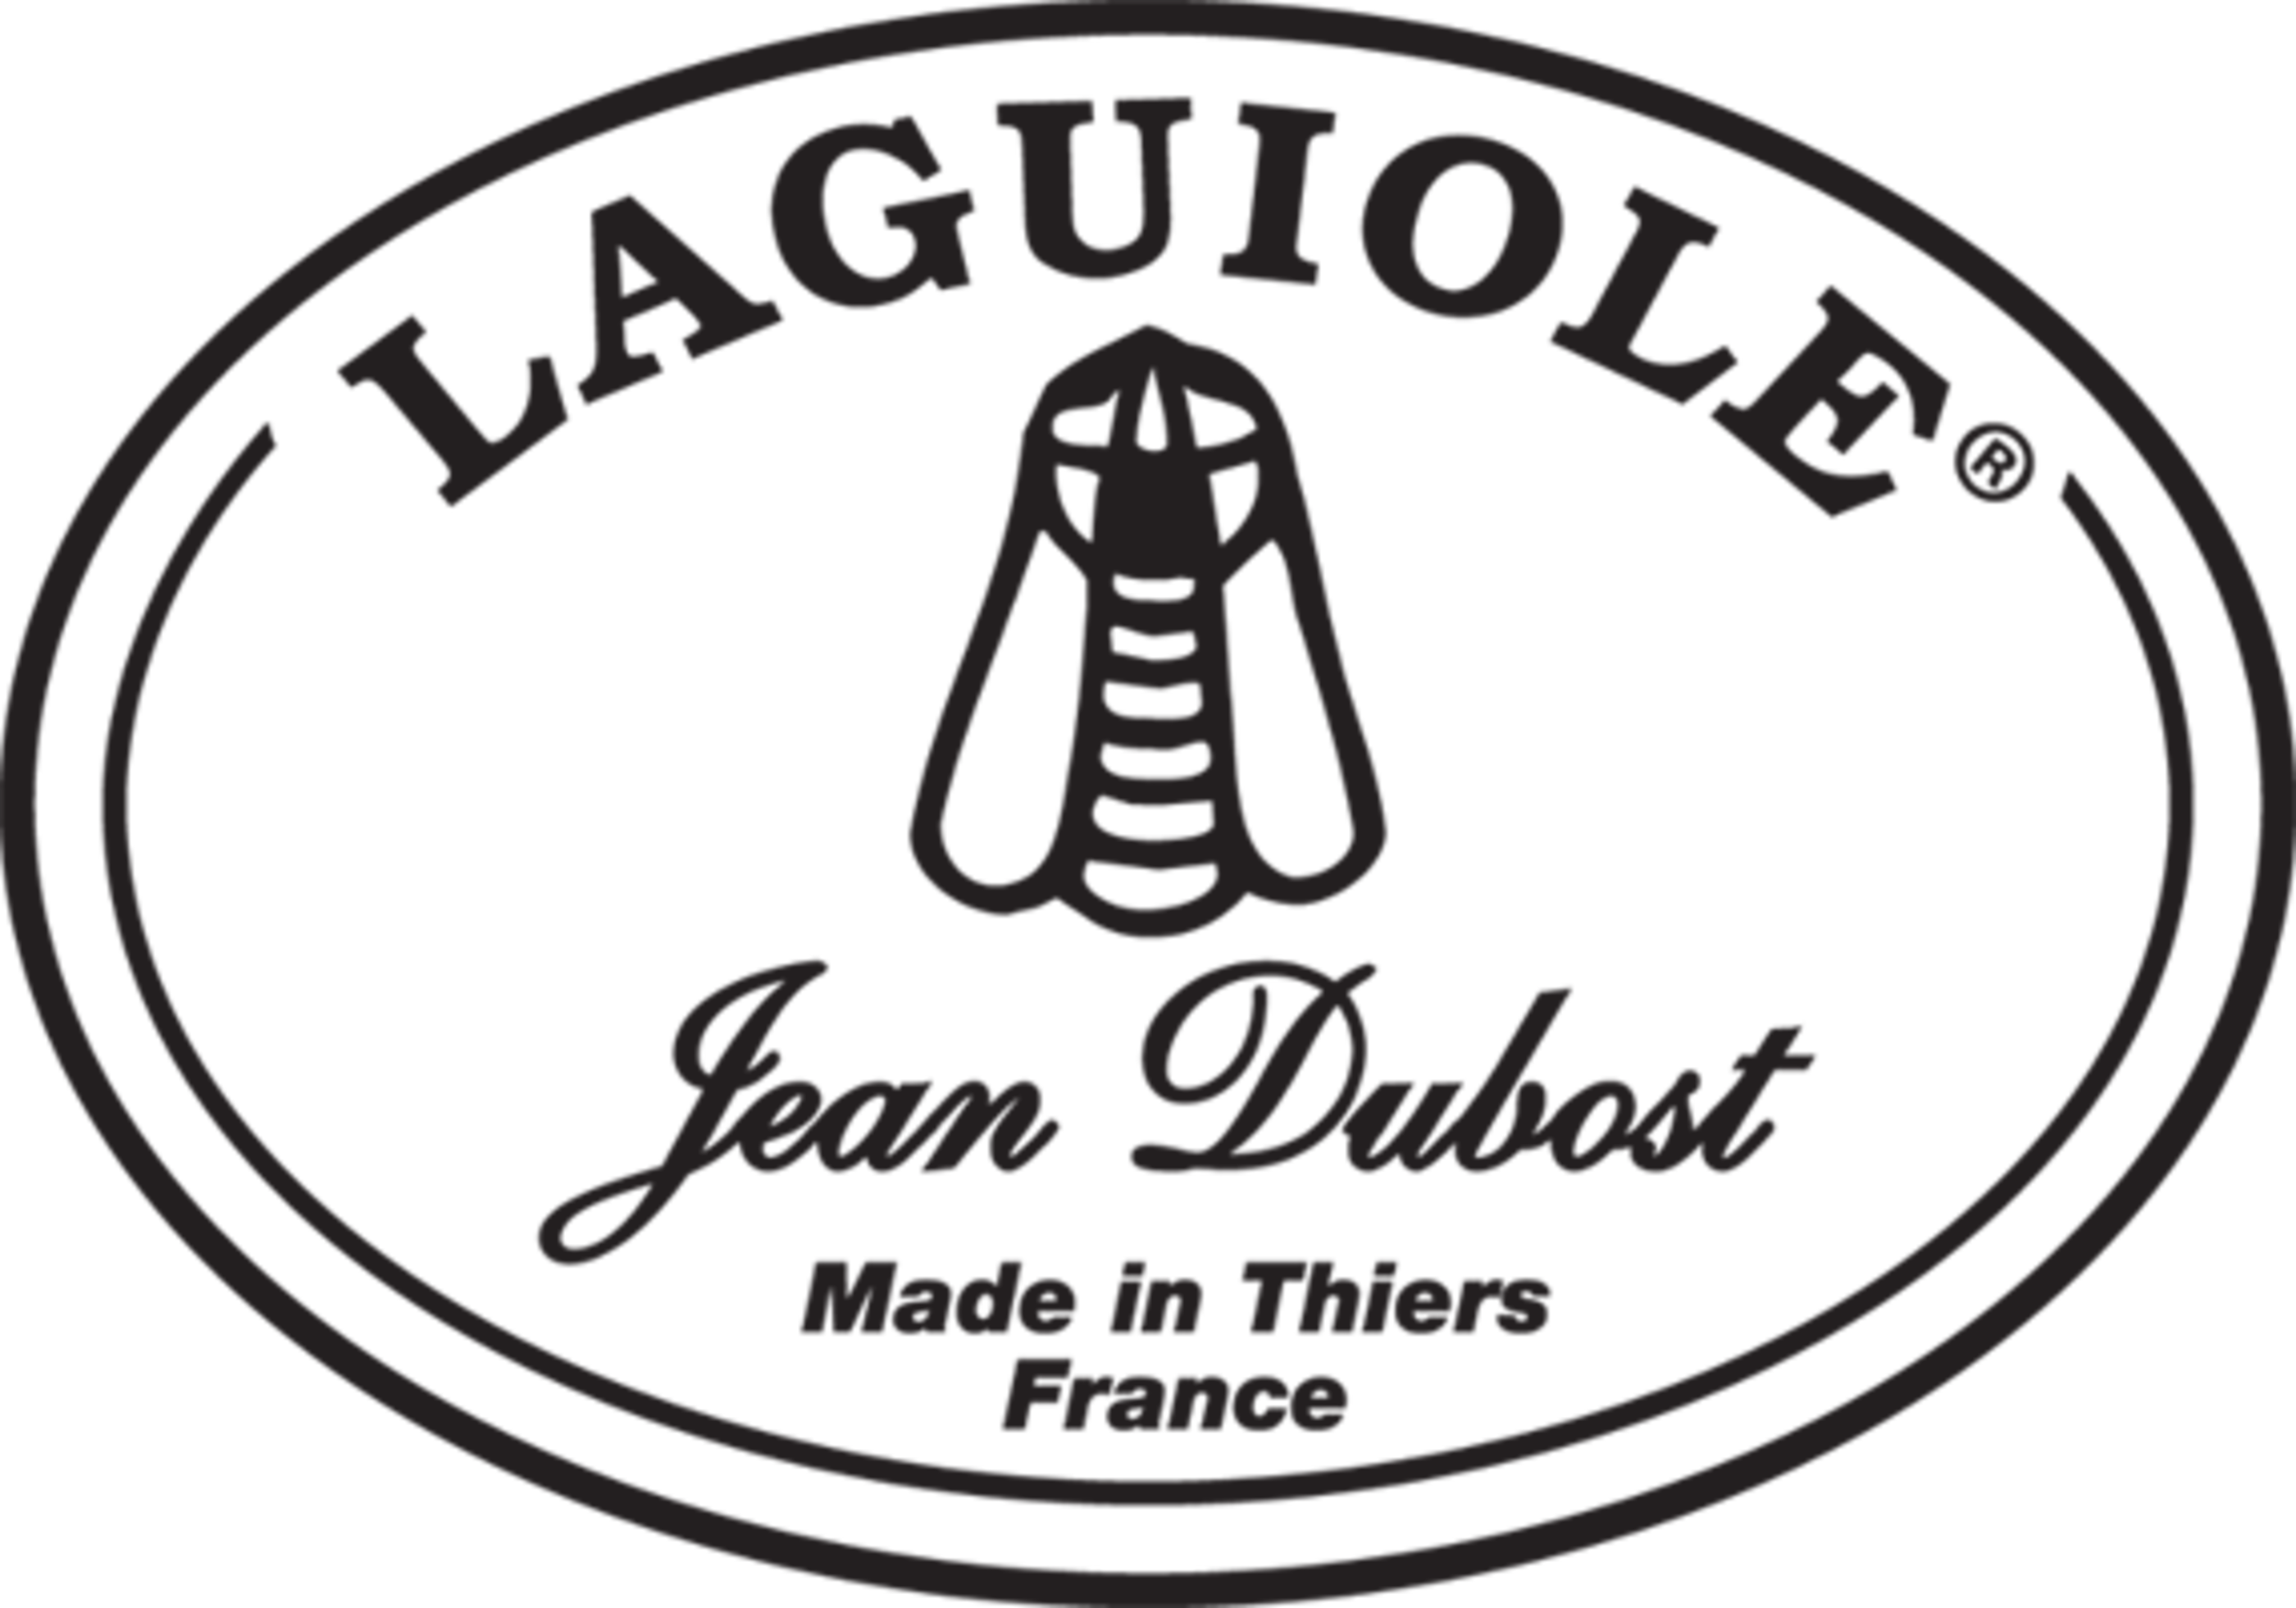 Couteau Laguiole® Jean Dubost, gamme New Age - Manalogue Darty Cuisine